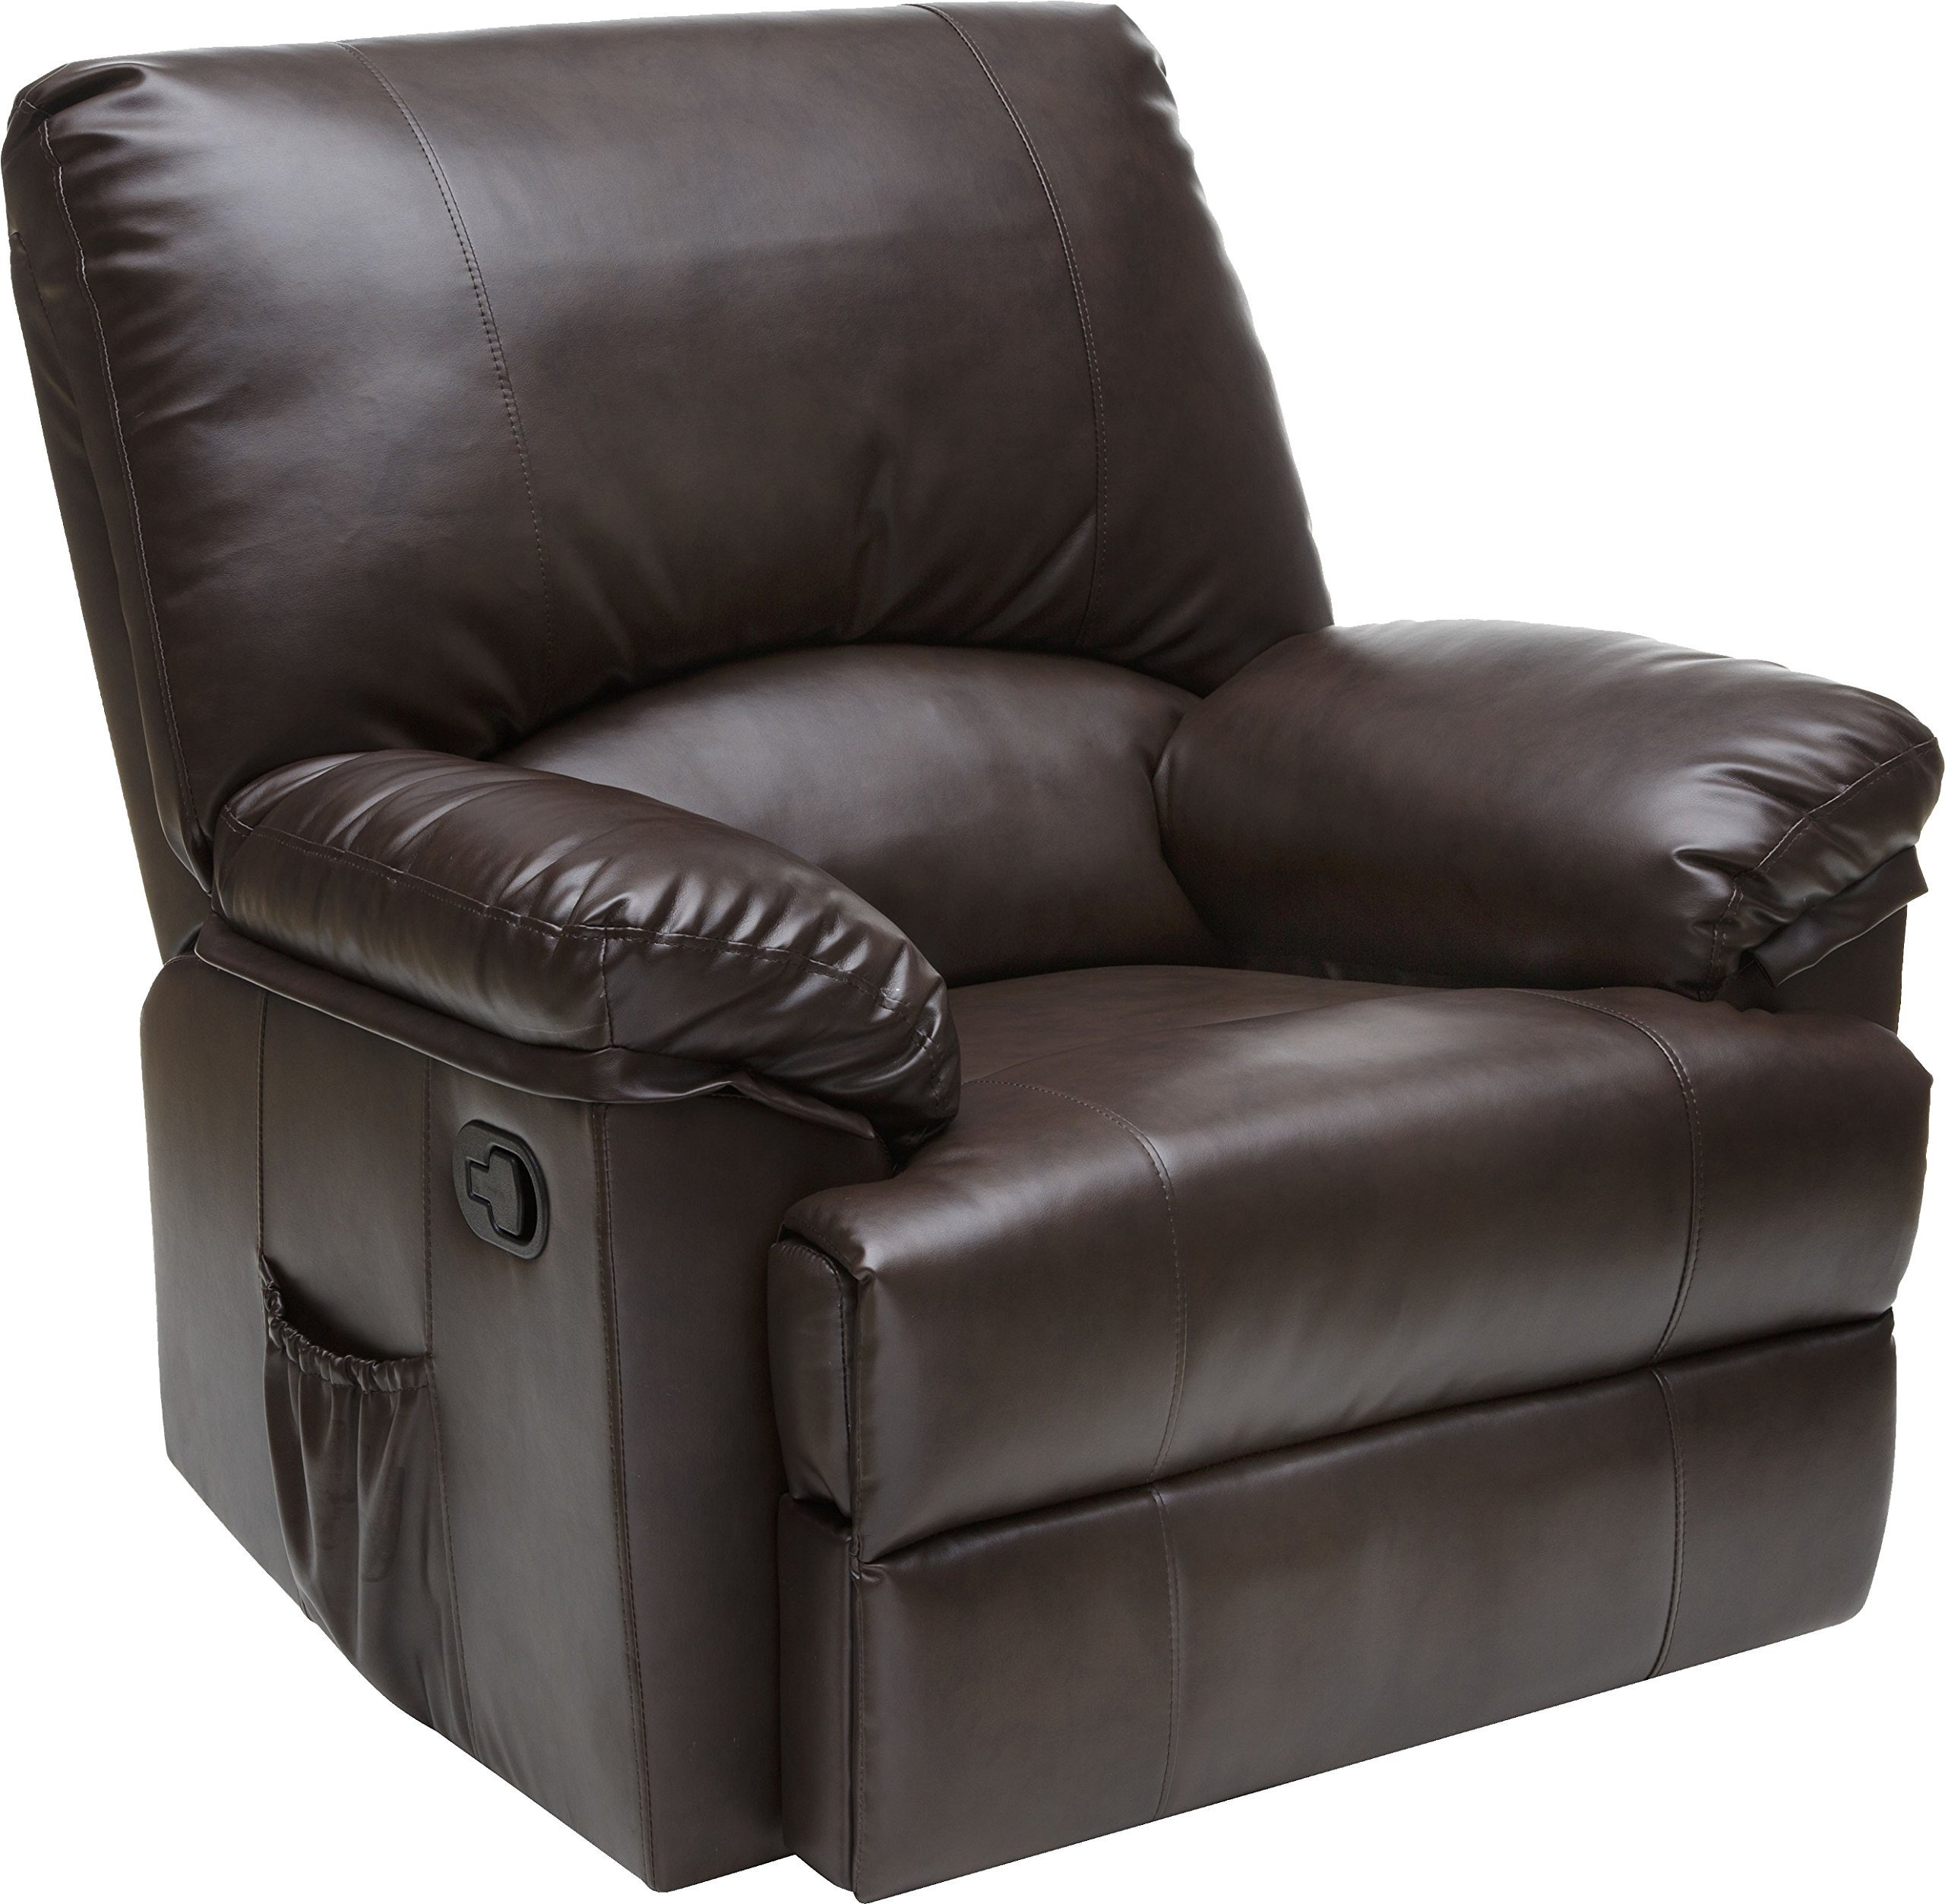 Relaxzen 60-7000M Rocker Recliner with Heat and Massage, Brown Marbled Leather by Relaxzen